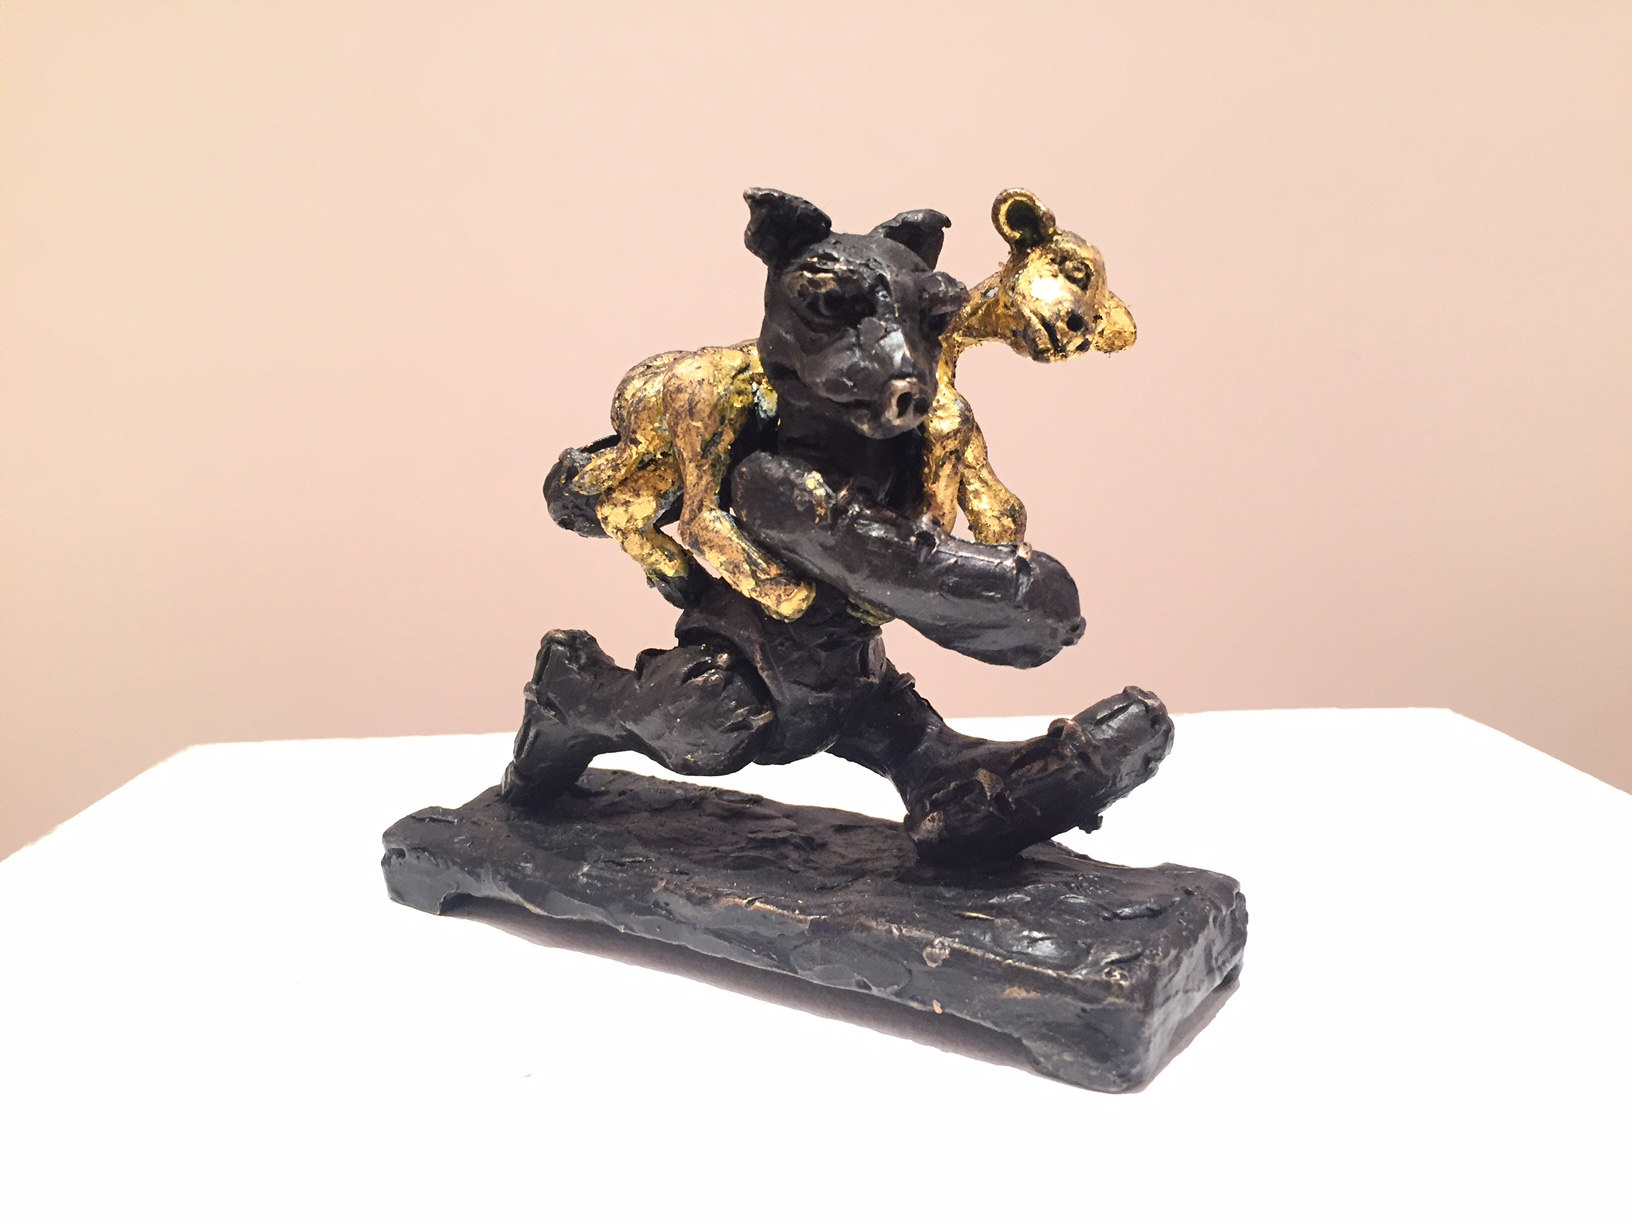 Patrick O' Reilly, Customised Little Bear (lamb), bronze and gold leaf, 13 x 16 x 6cm